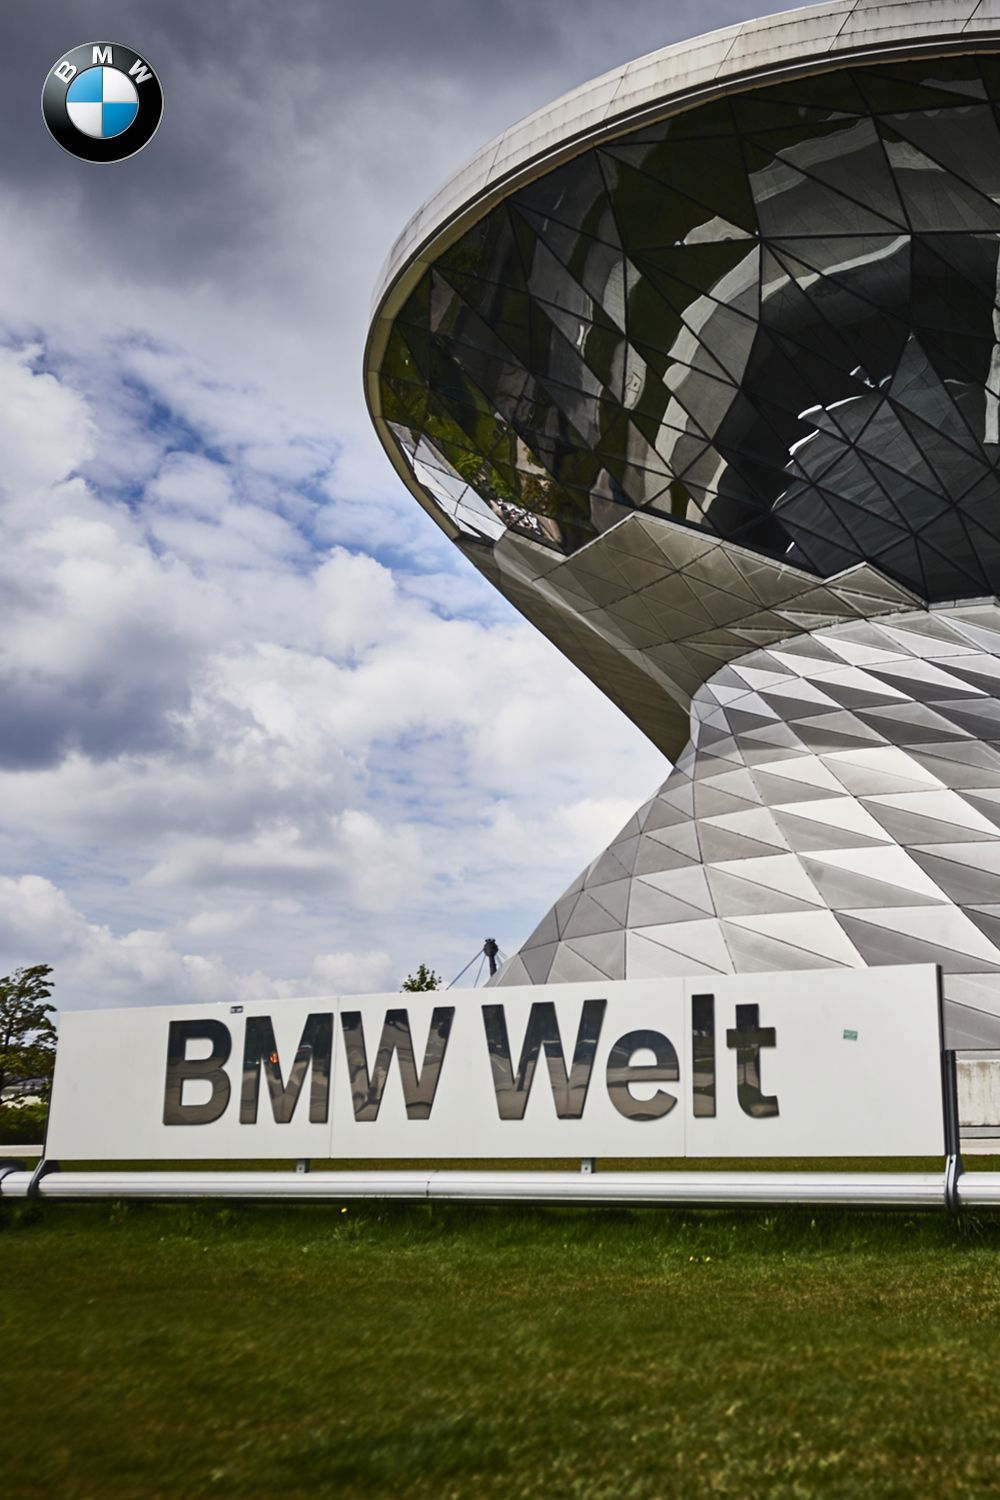 Meet Your New Bmw At The Iconic Bmw Welt When You Participate In The European Delivery Program Bmw European Delivery Bmw New Bmw